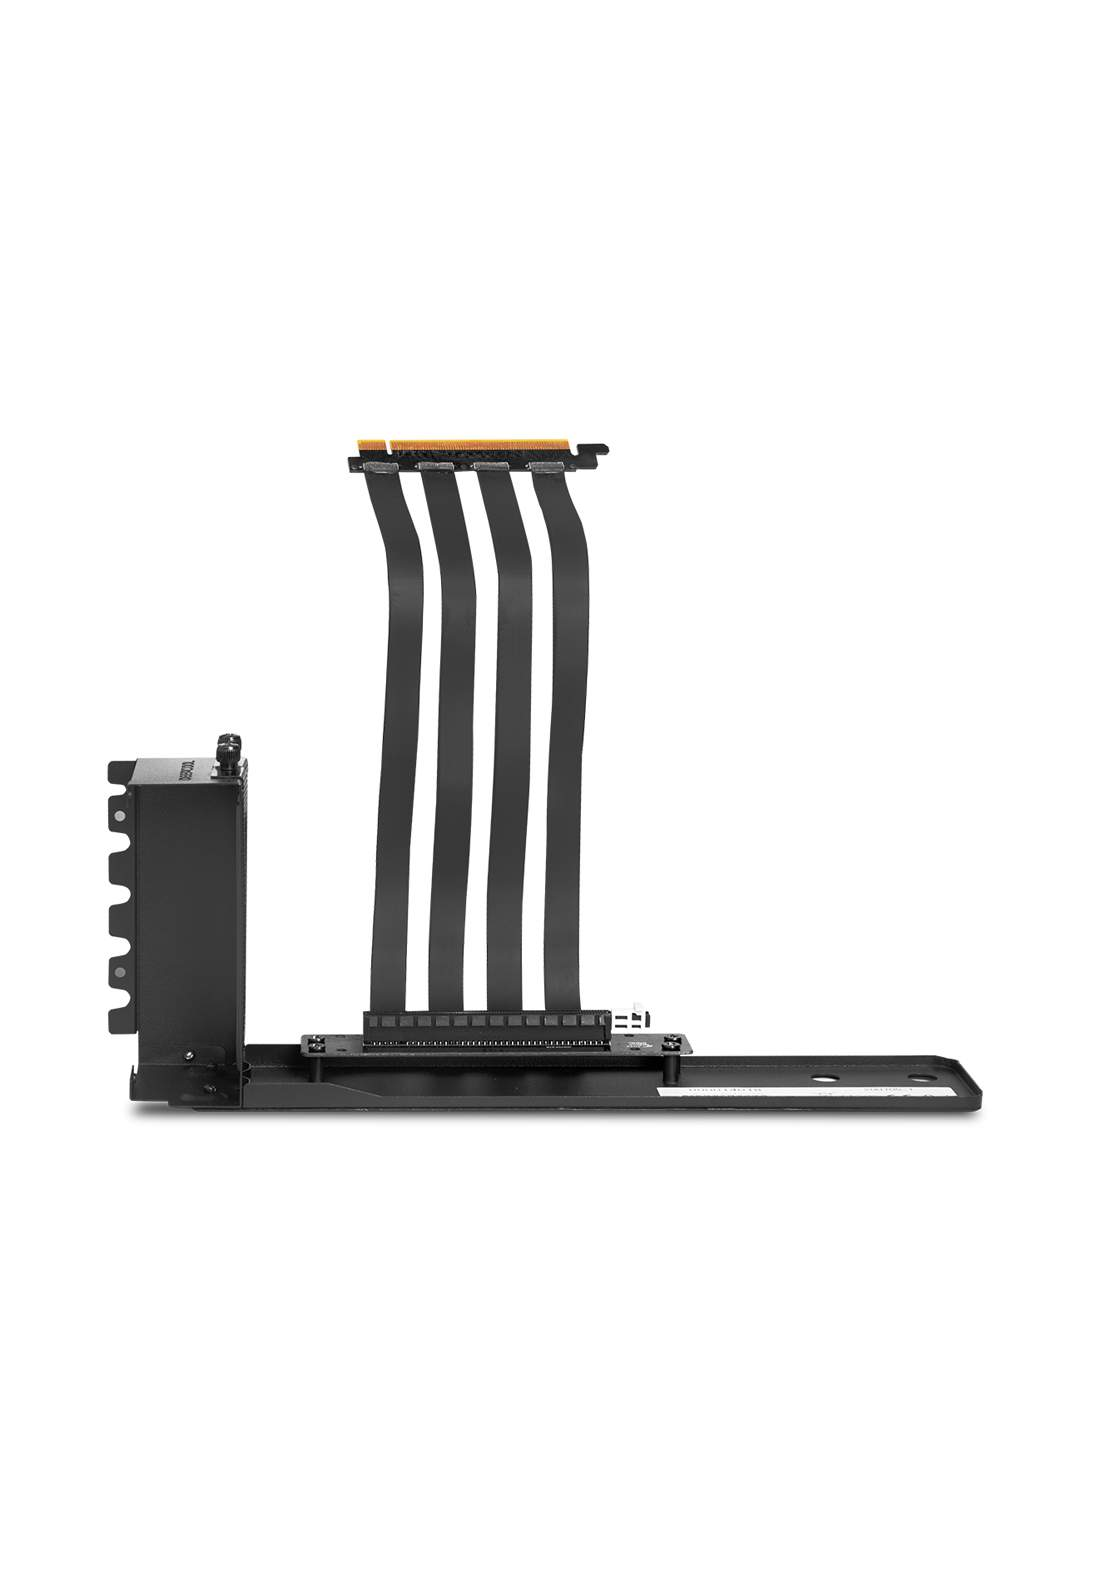 Deepcool PAB 300 Graphics Card Holder With 200mm Extension Cable - Black حامل كارد شاشة